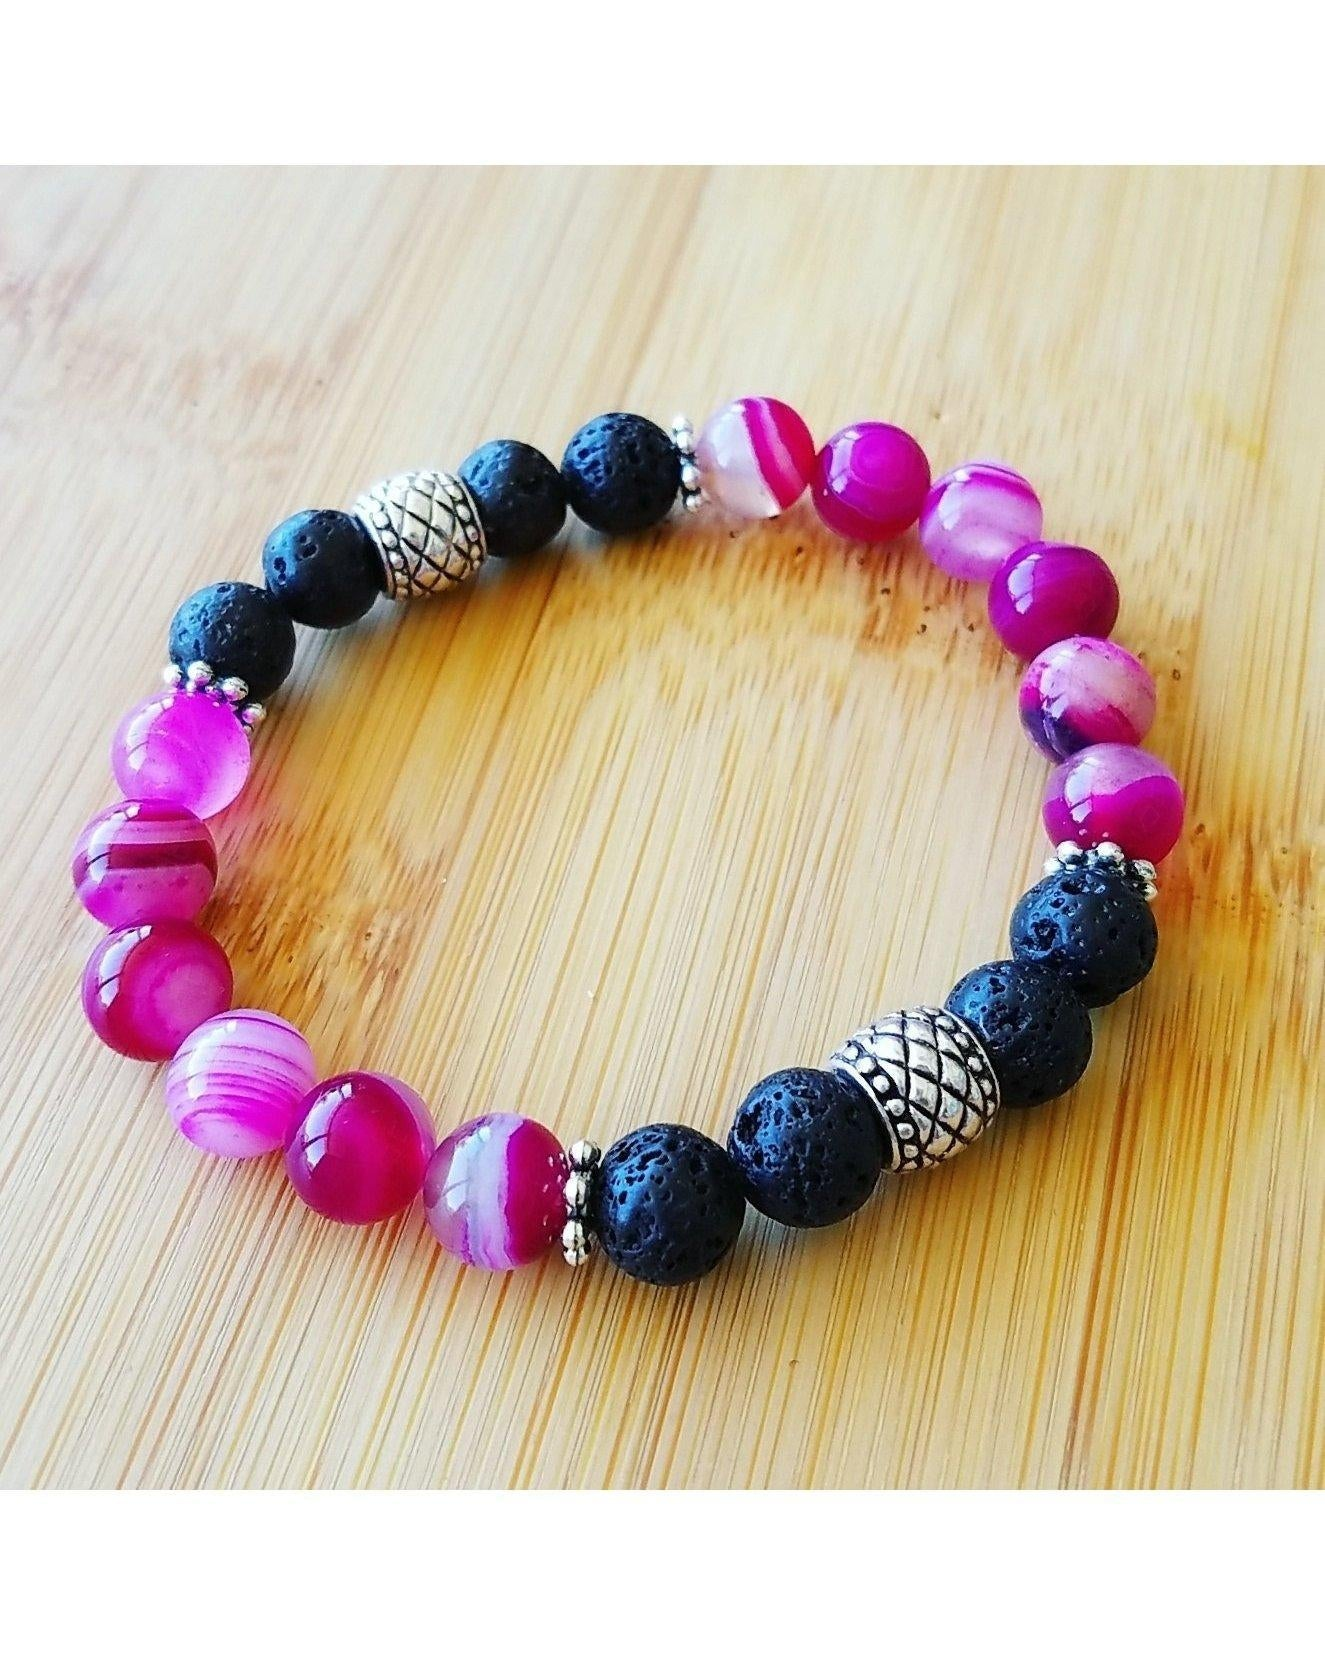 Fuchsia Banded Pink/White Agate Gemstone & Lava Rock 8mm Bead Essential Oil Aromatherapy Diffuser Stretch Bracelet P057 - Essentially Elegant